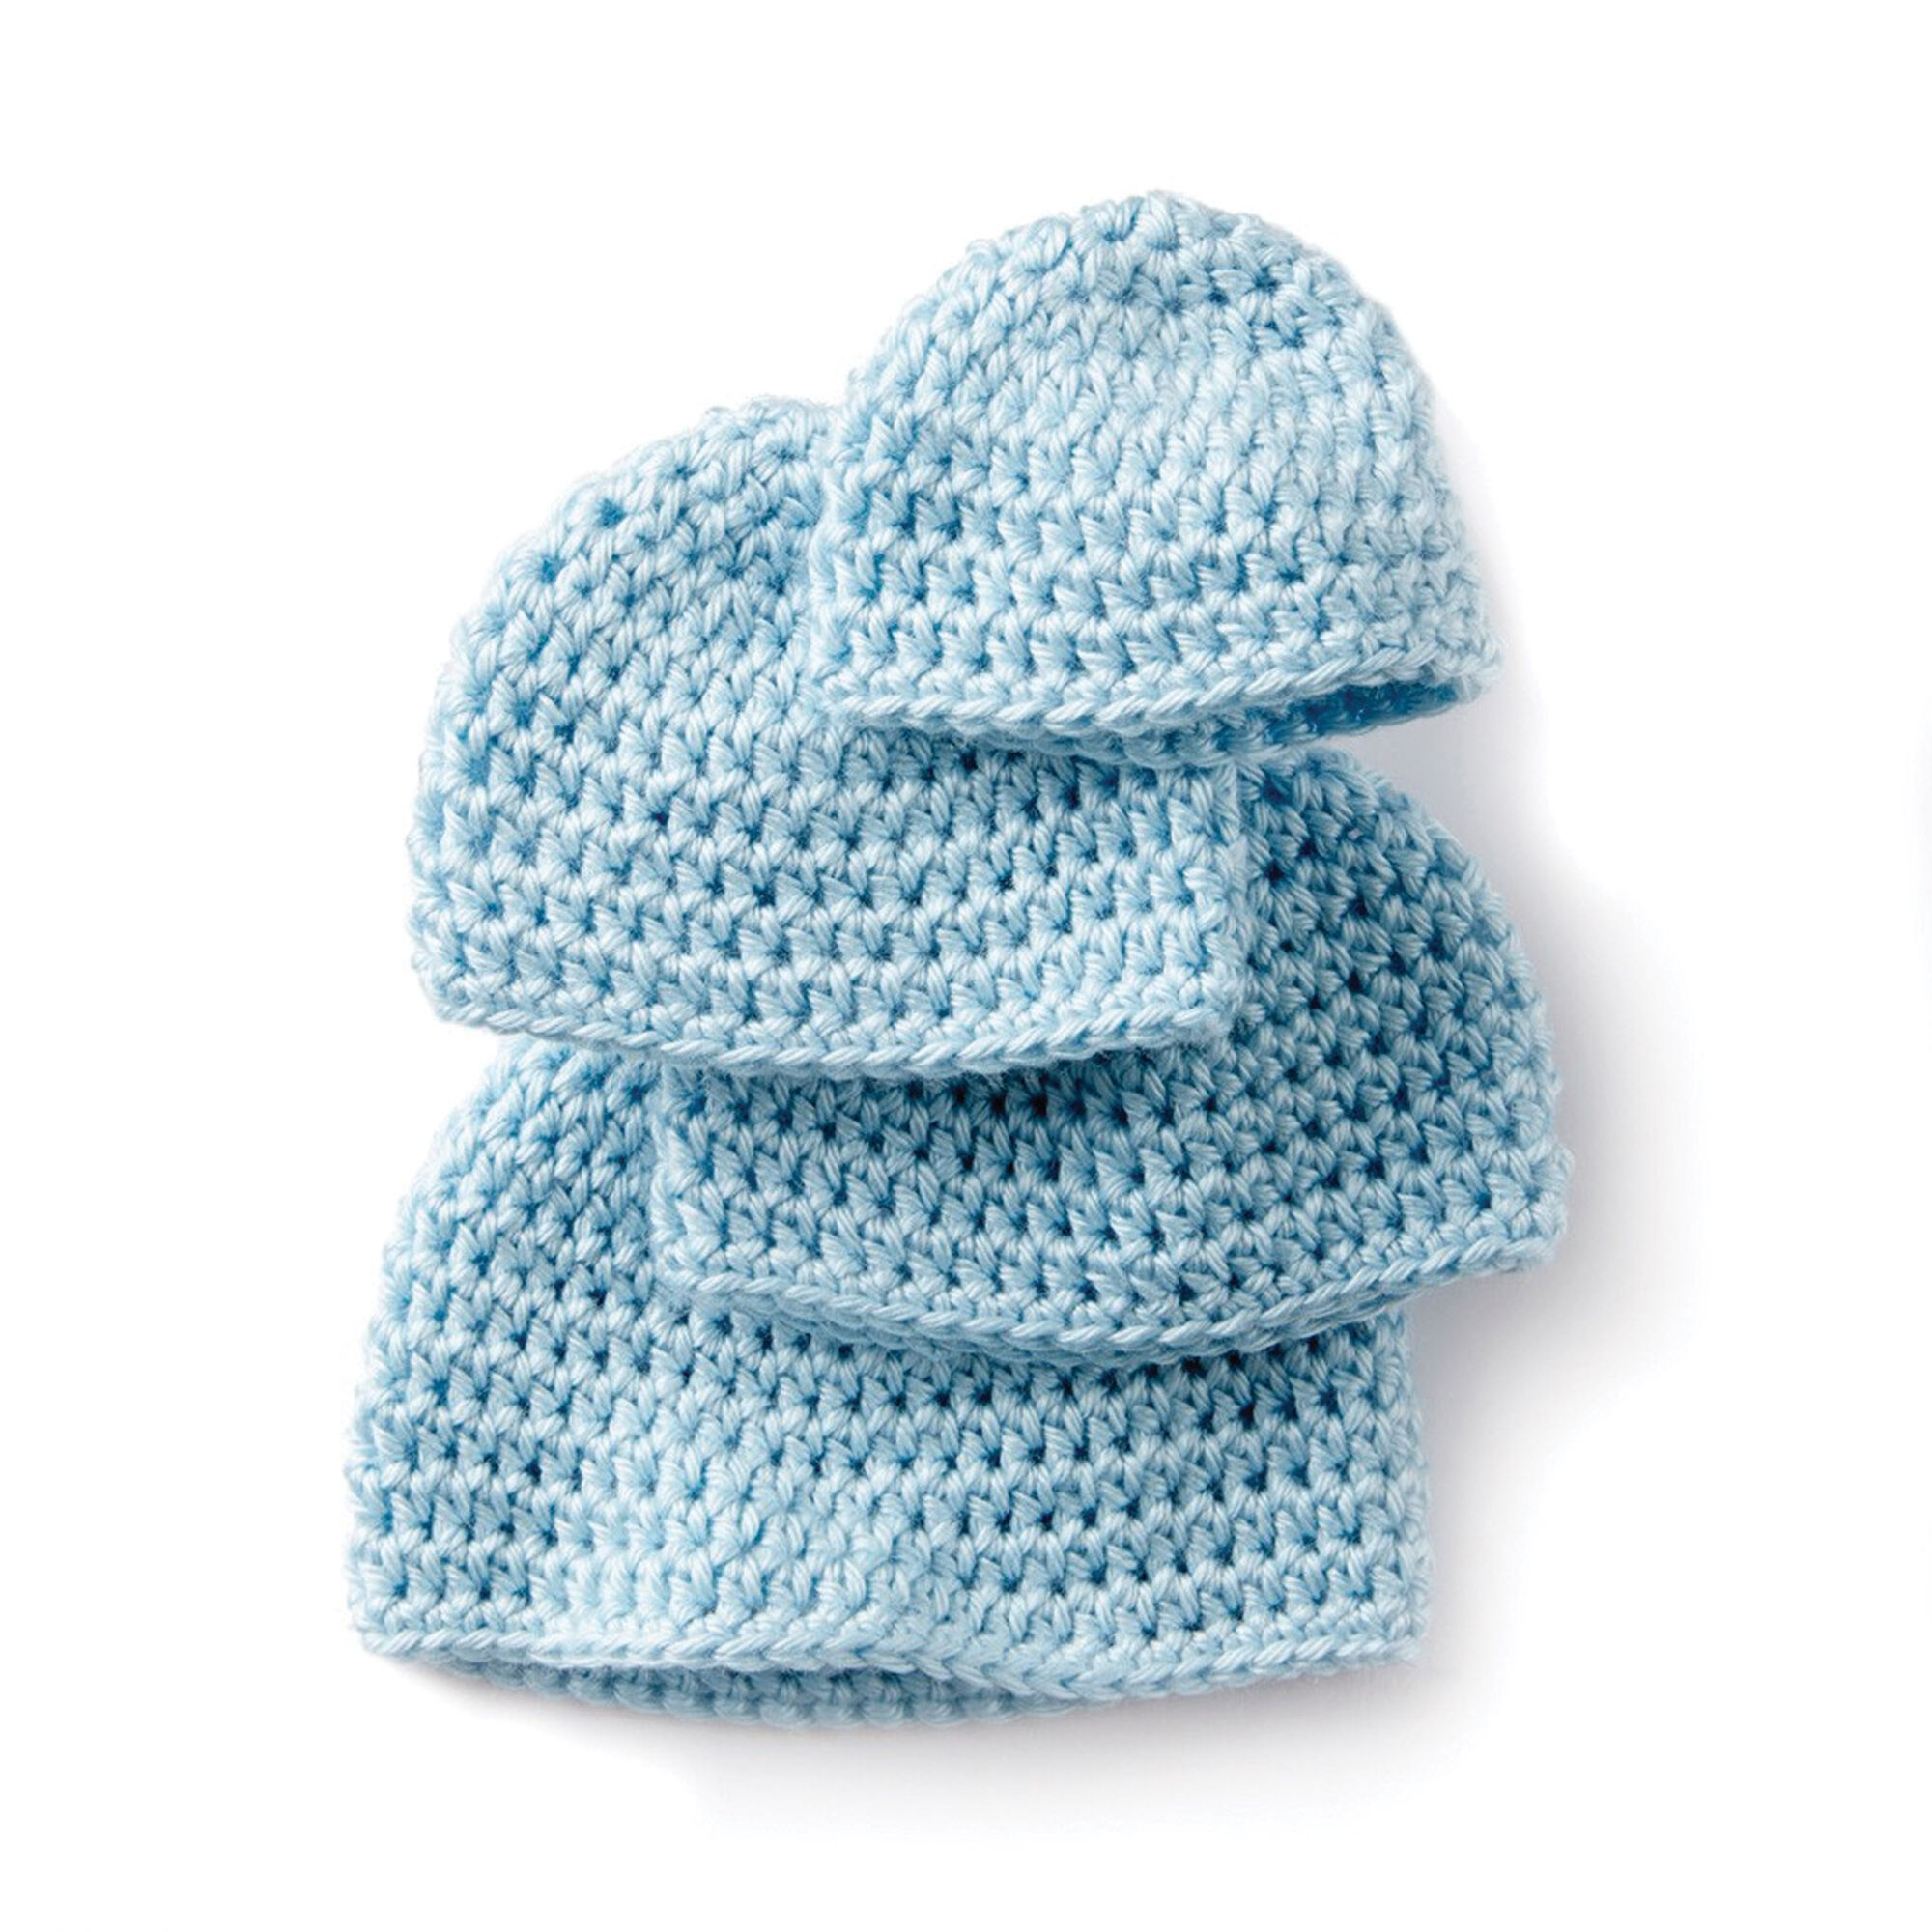 How To Crochet A Hat For A Premature Baby